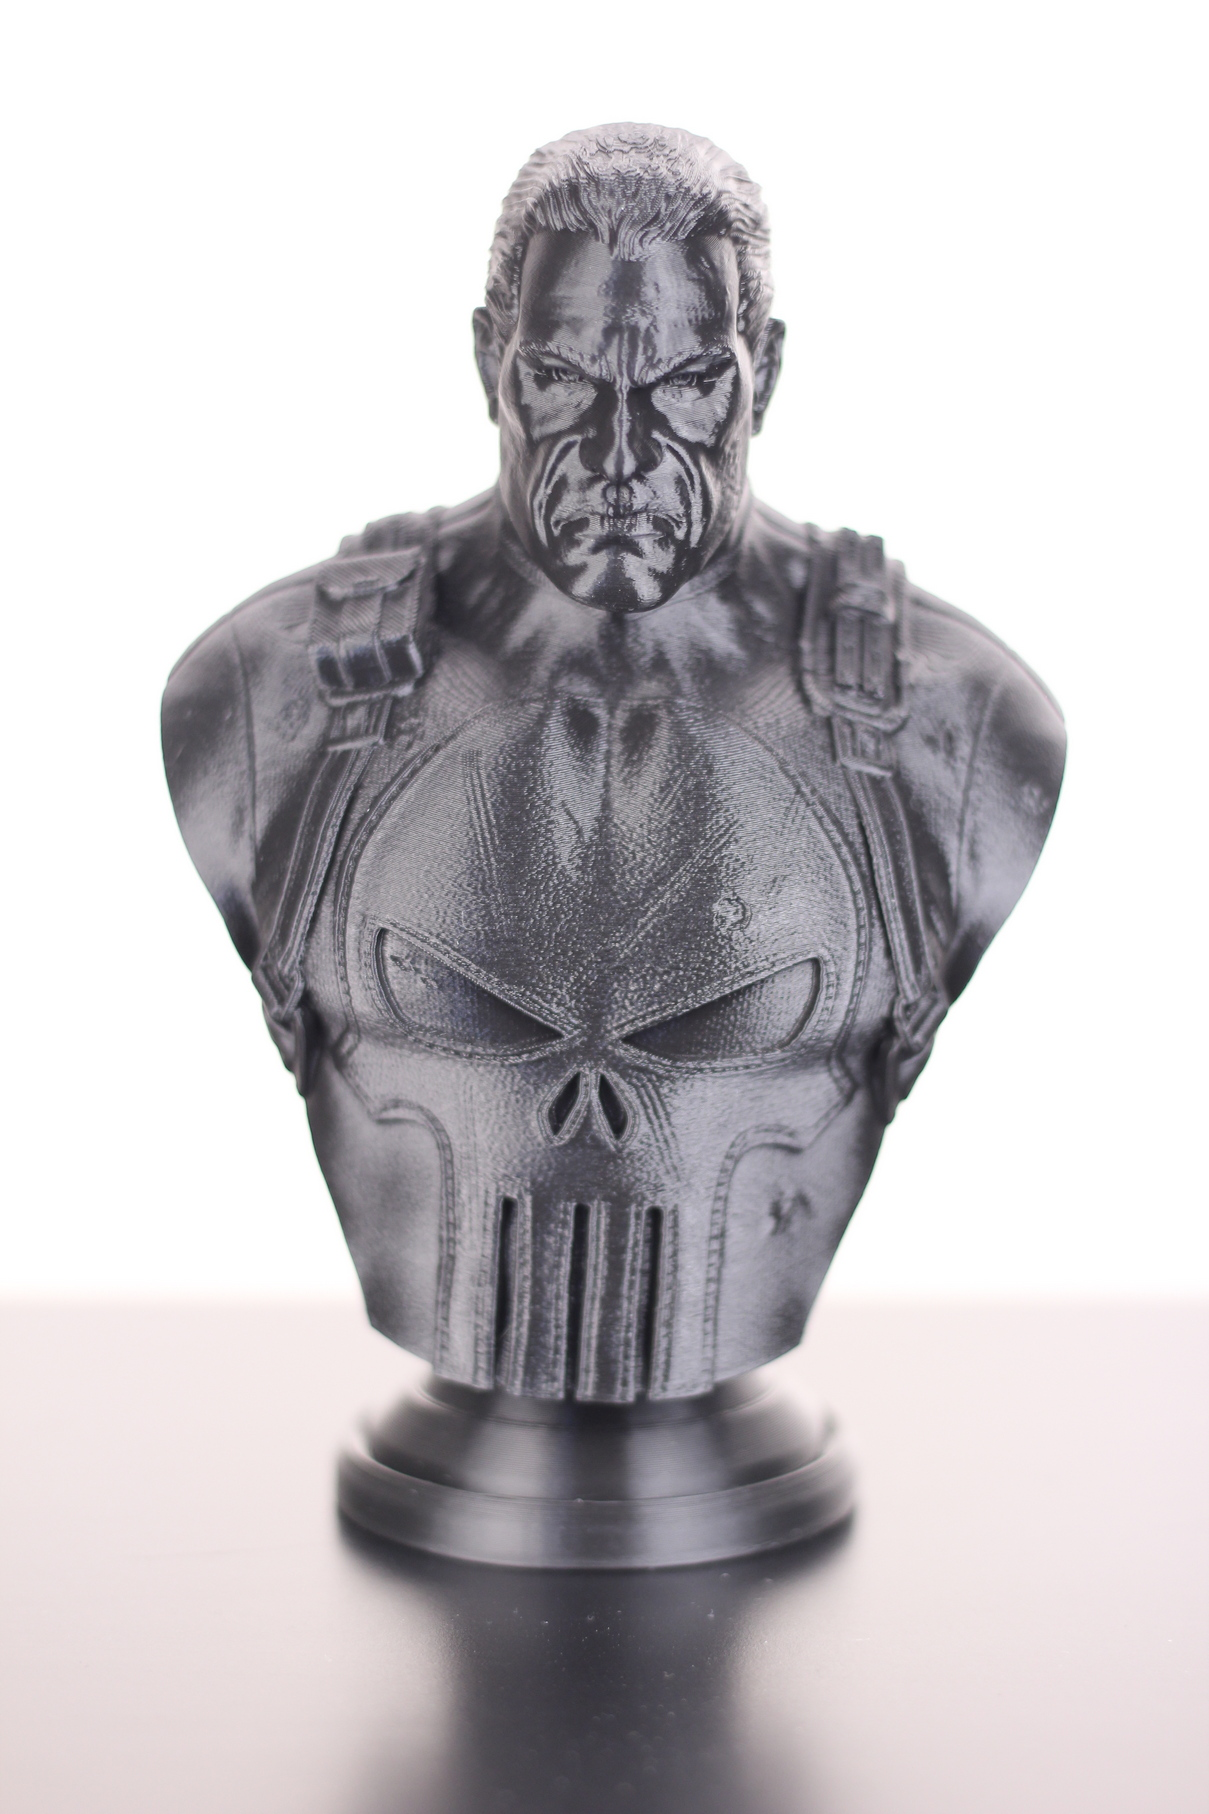 The-Punisher-on-Ender-3-Max-1